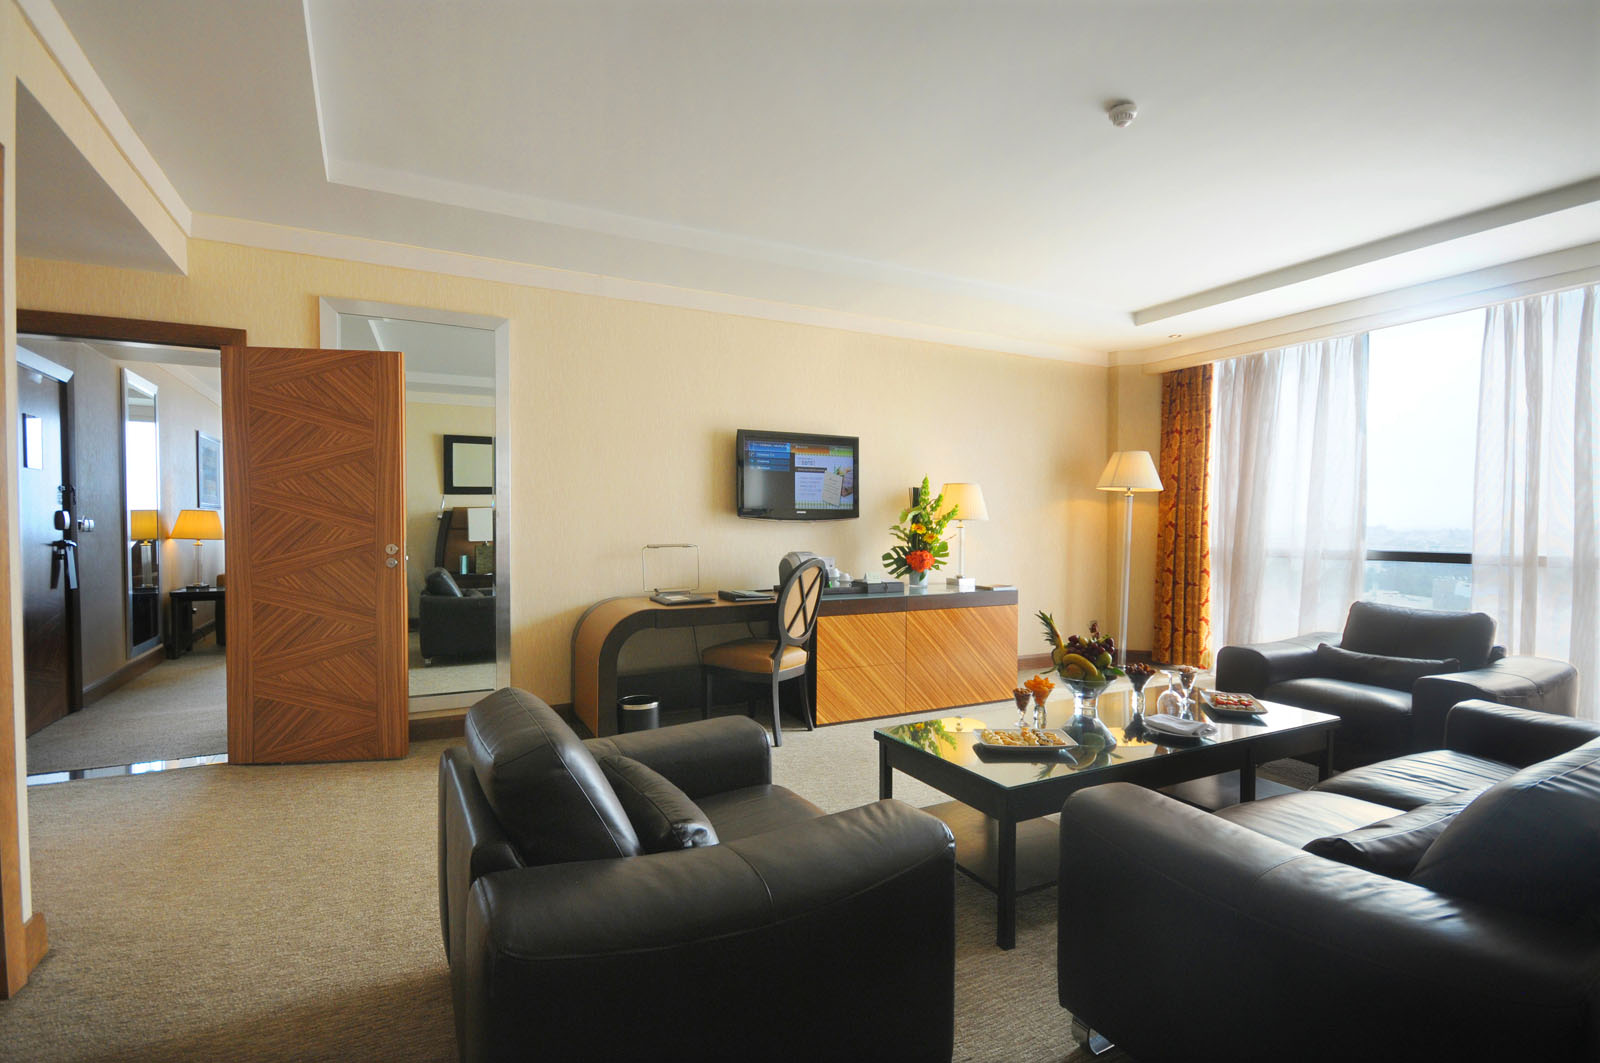 Diplomatic Suite at Kenzi Tower Hotel in central Casablanca, Mor